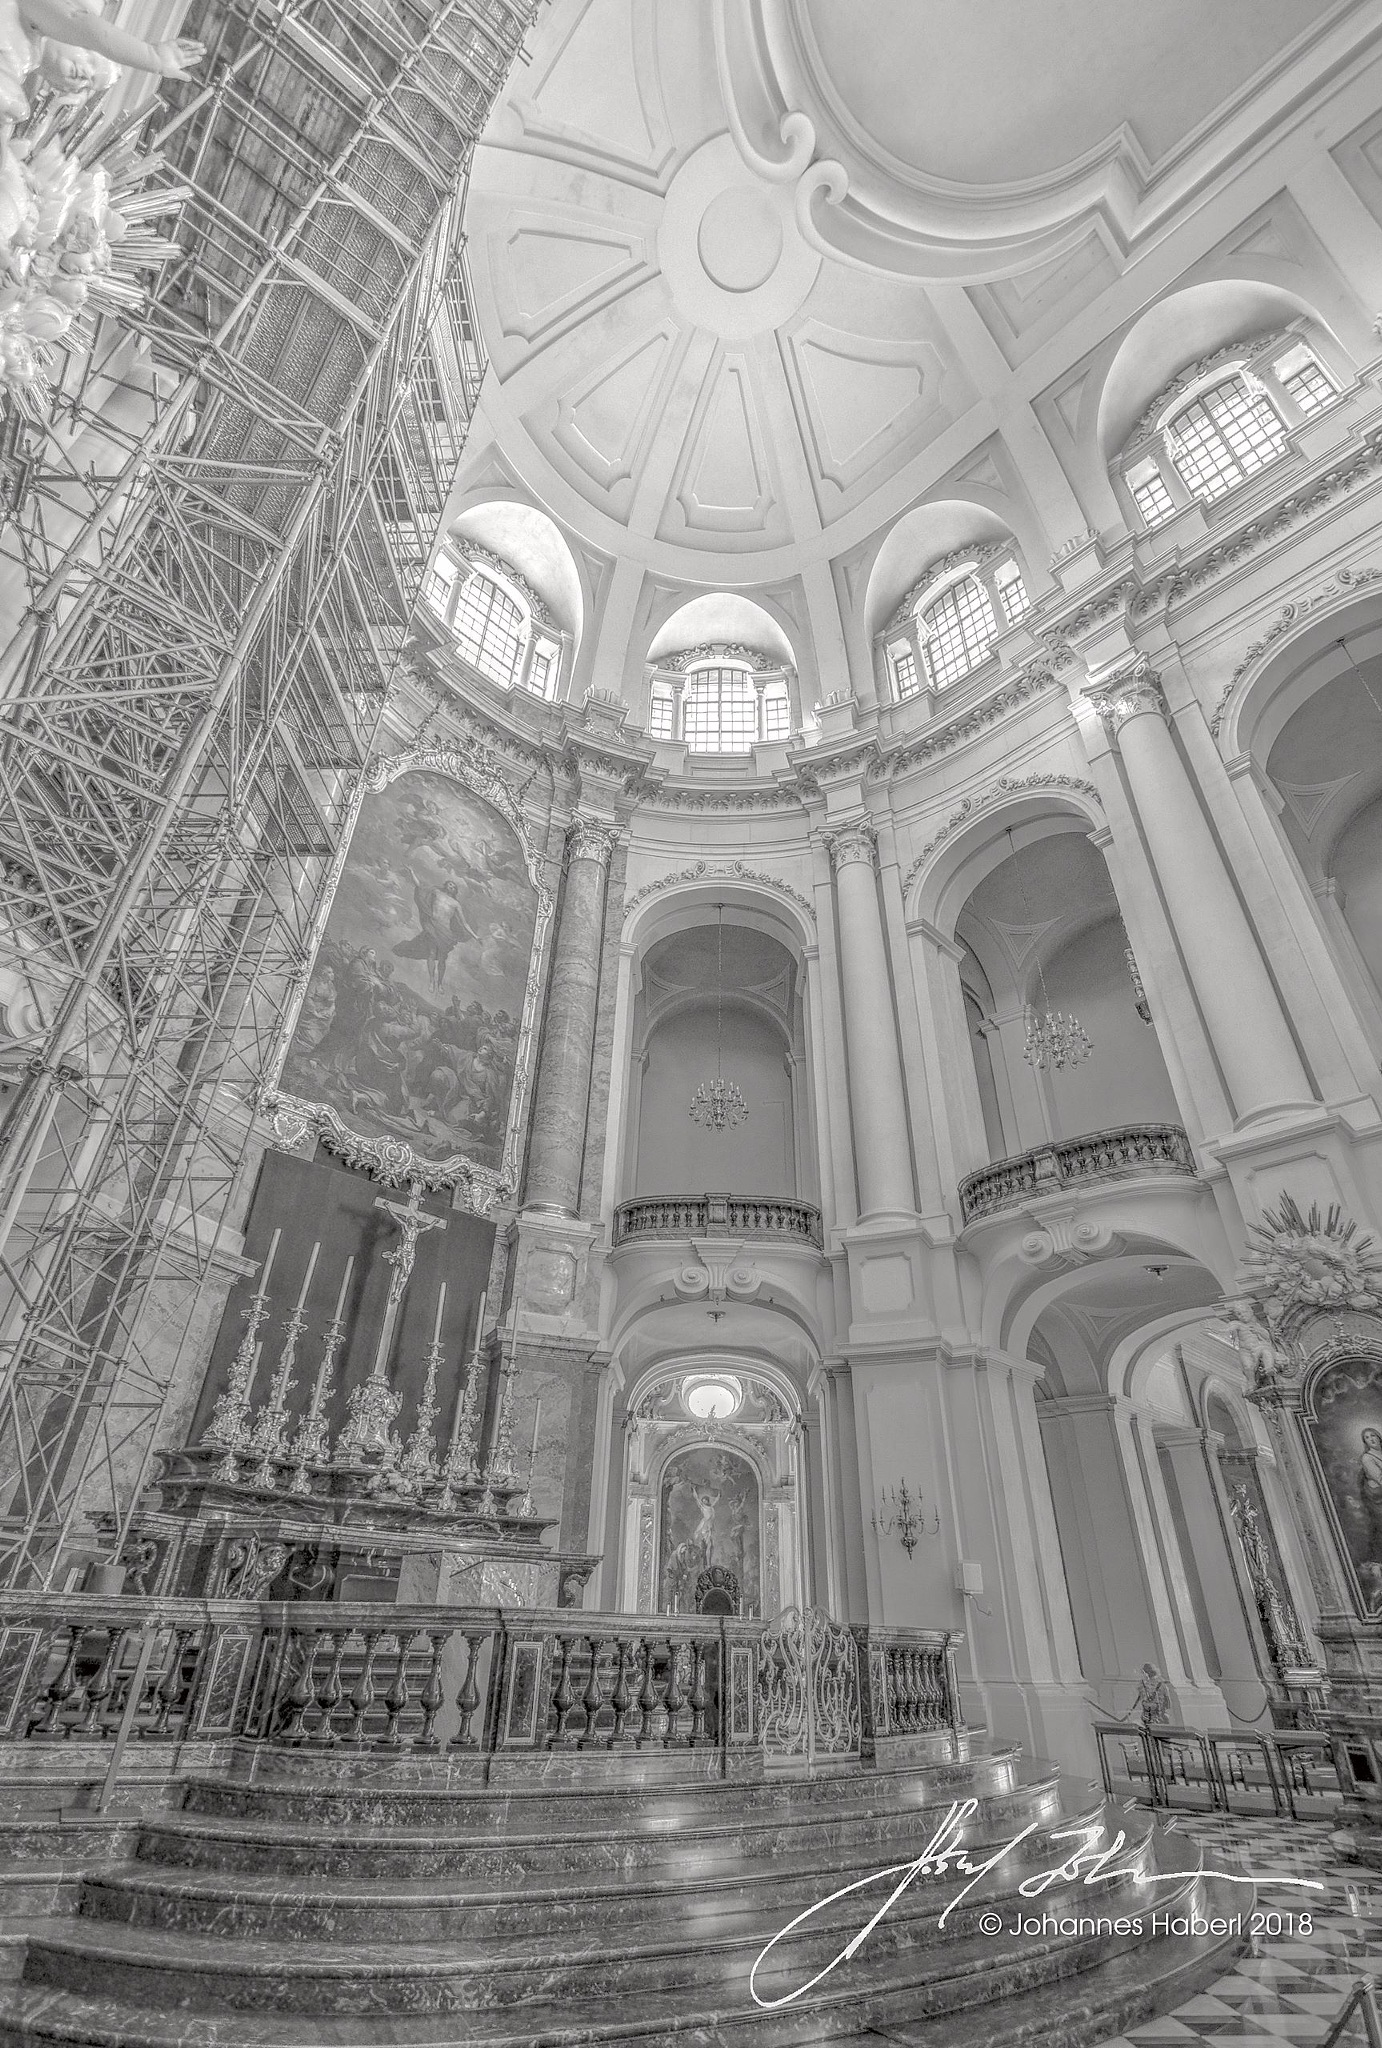 church V, HDRI, B&W, high key by Johannes Haberl